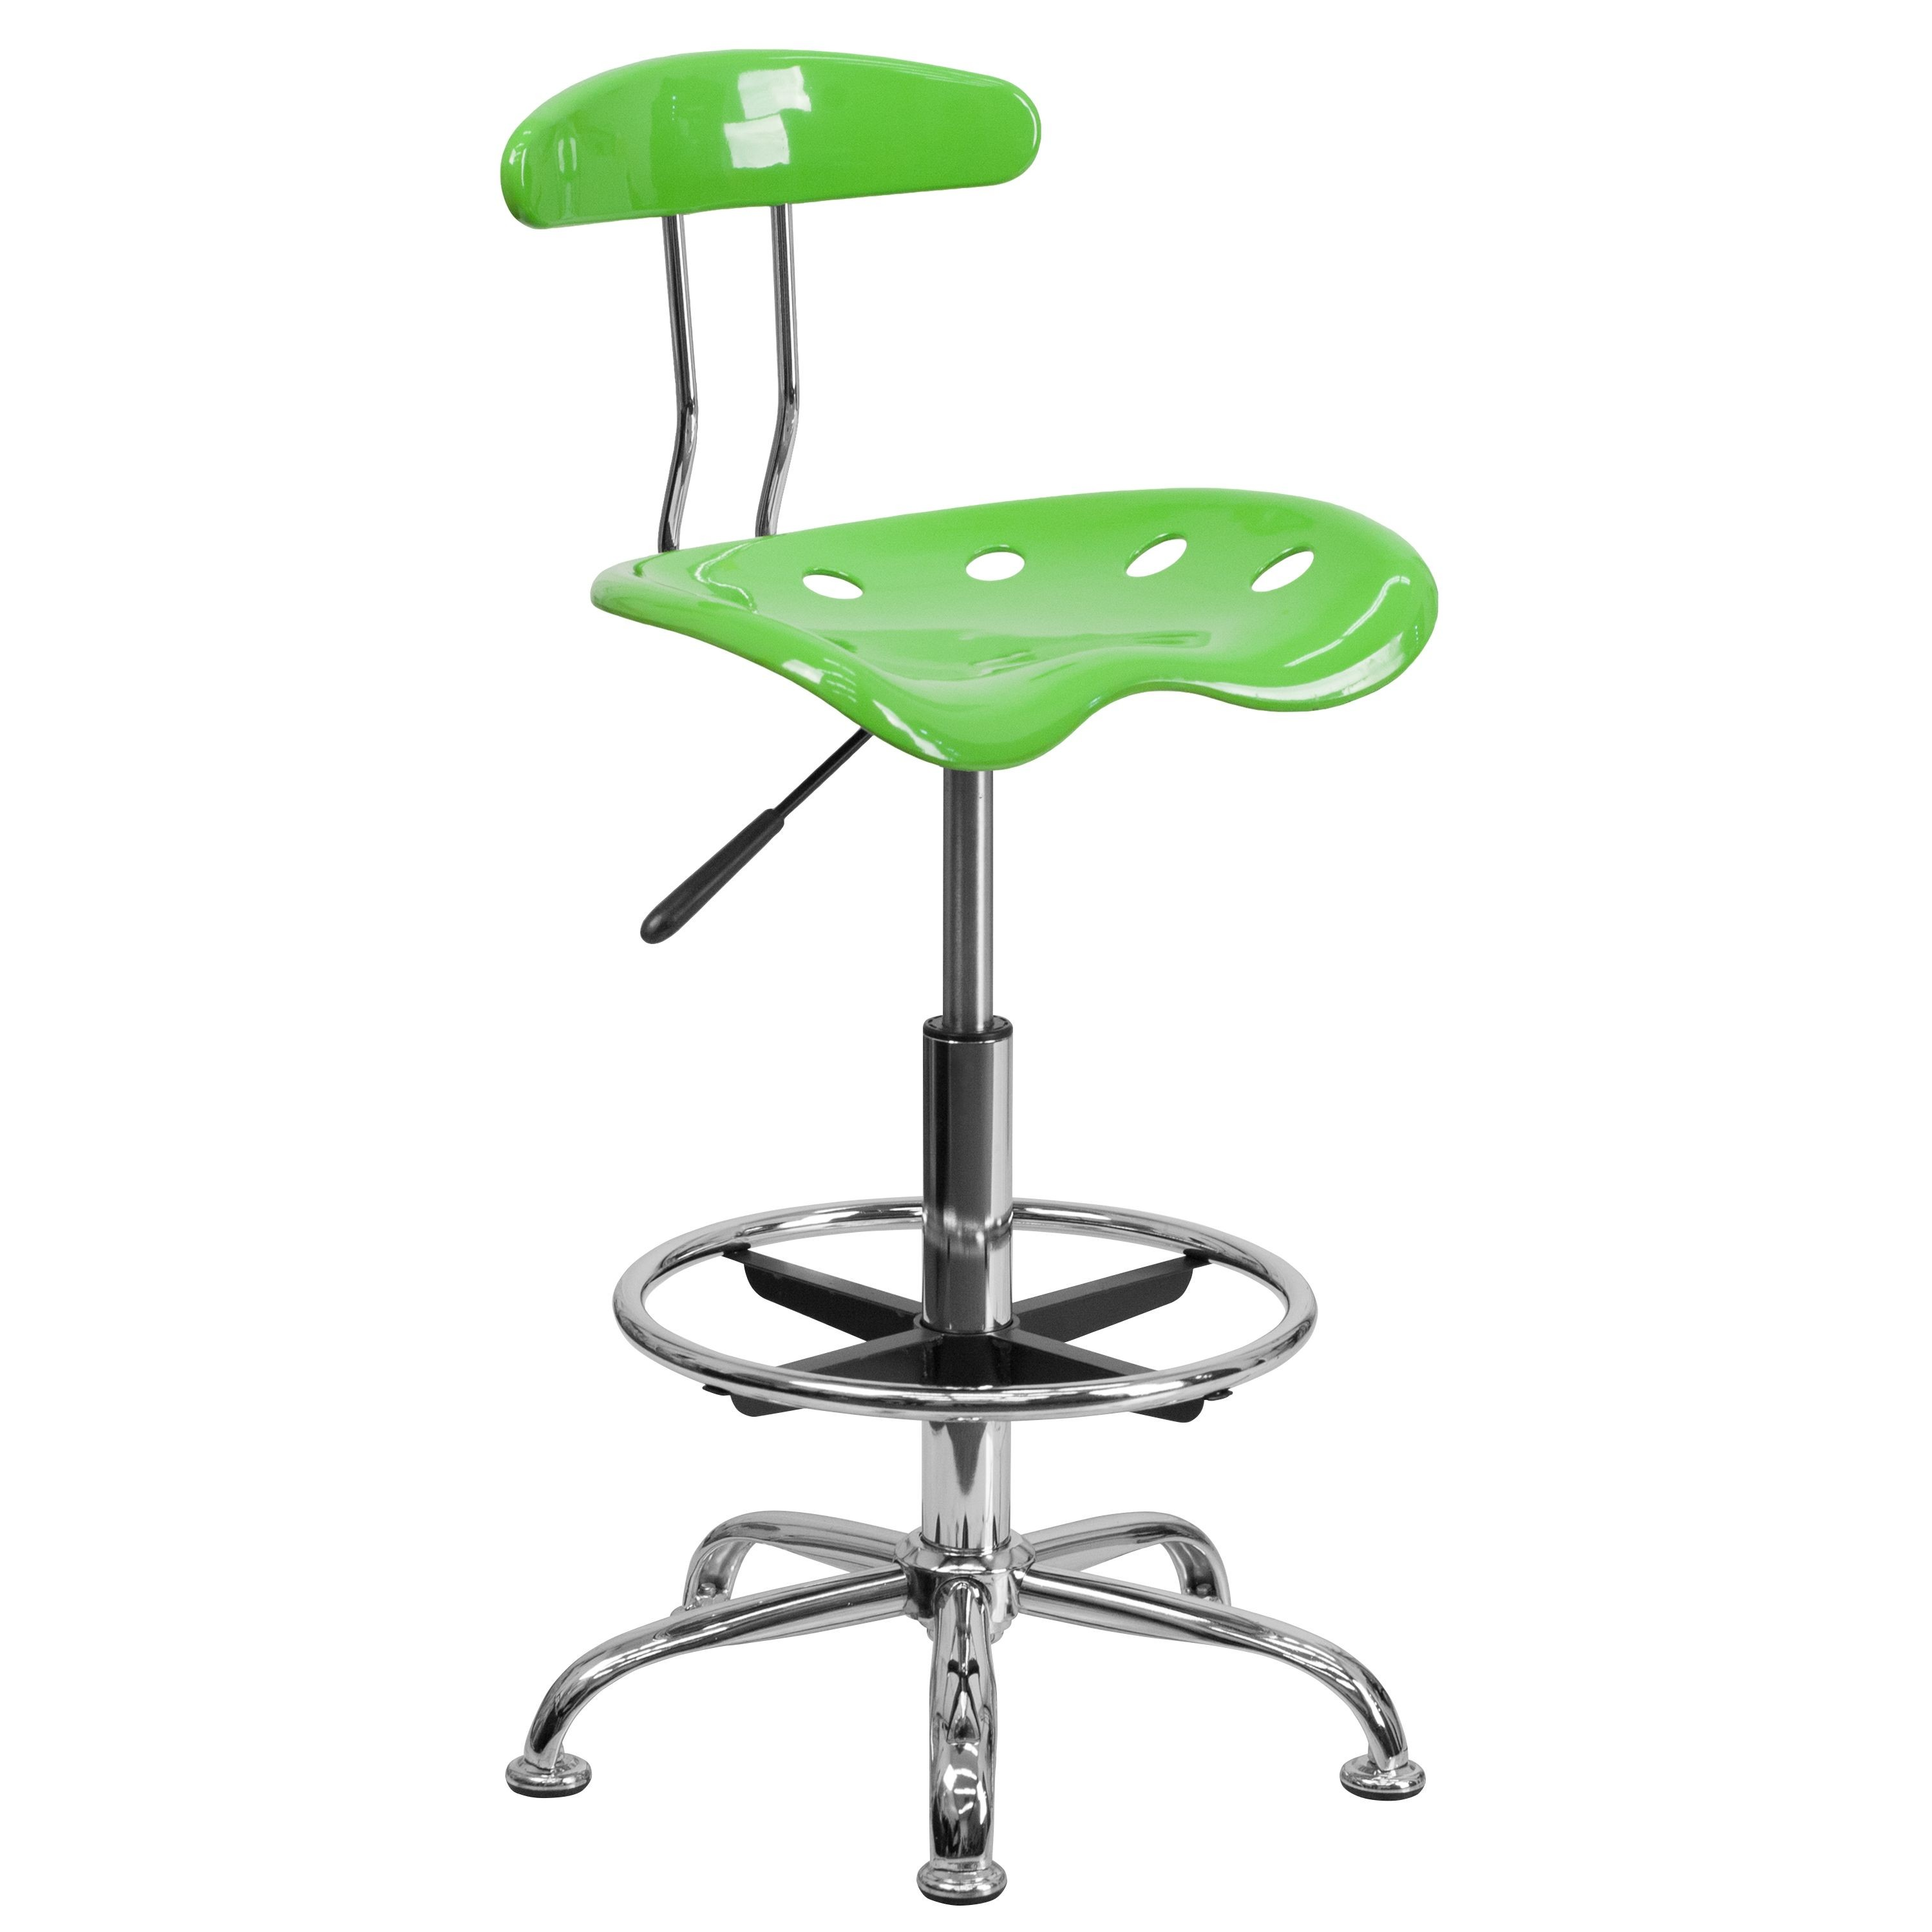 Flash Furniture lf-215-applegreen-gg Vibrant Apple Green and Chrome Bar Stool Height Drafting Stool with Tractor Seat